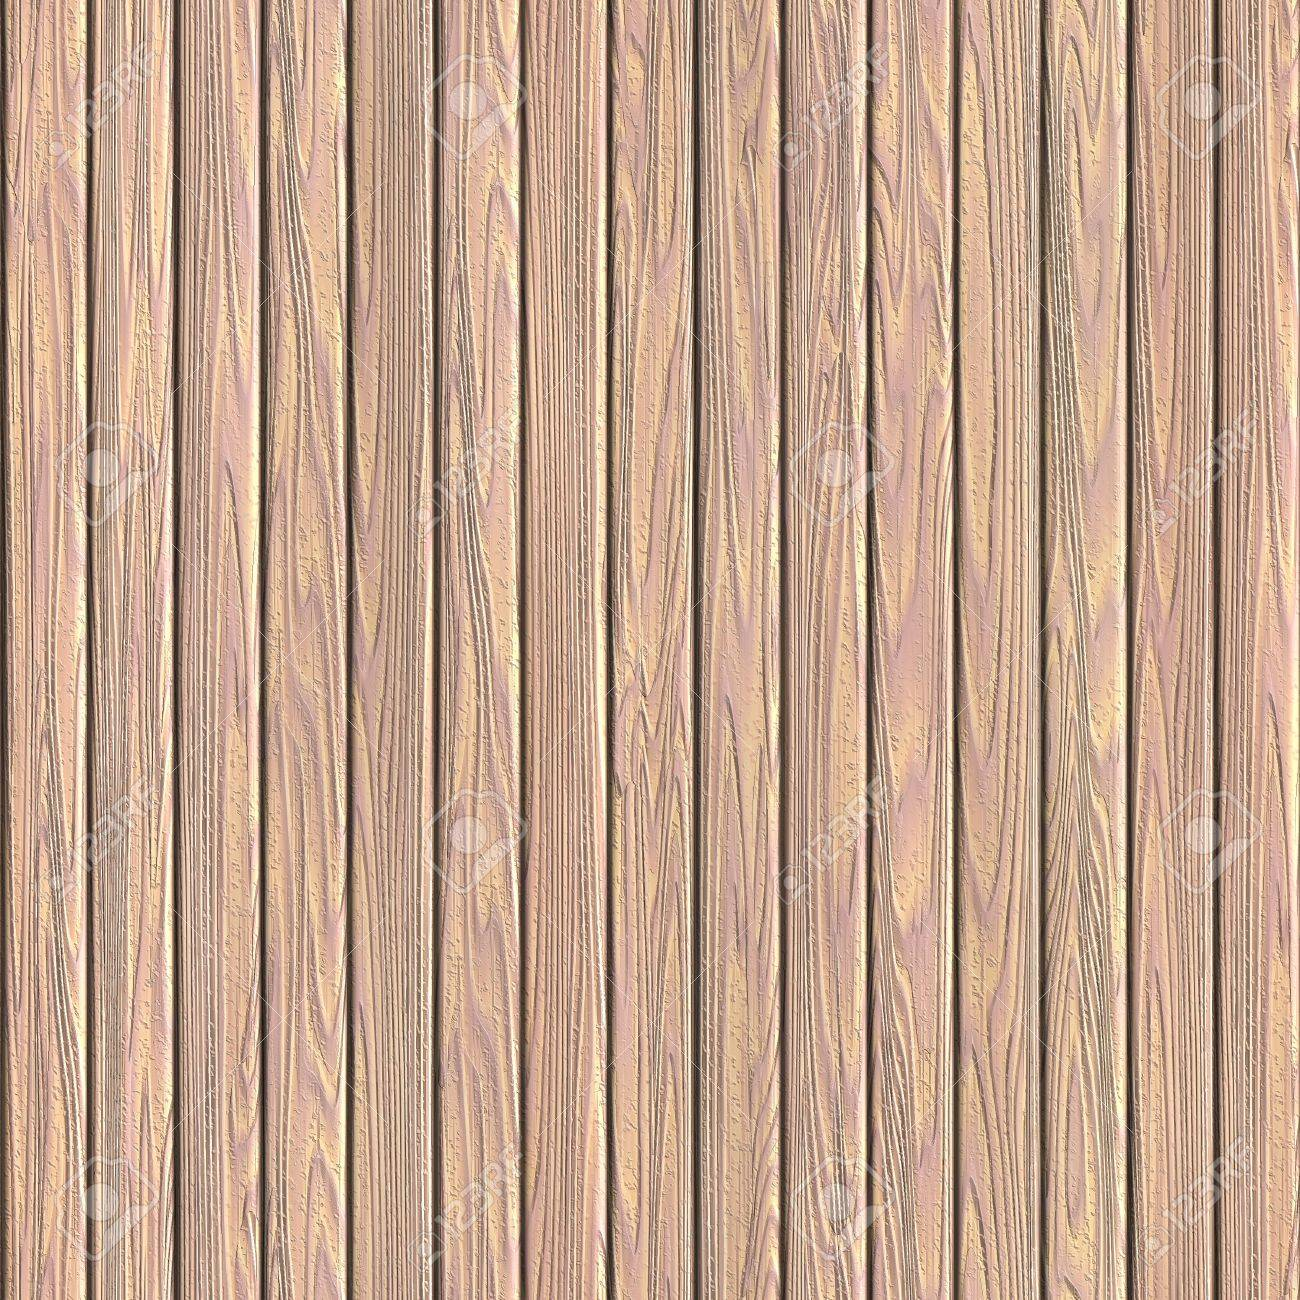 Wood plank. Seamless texture. Stock Photo - 18026735